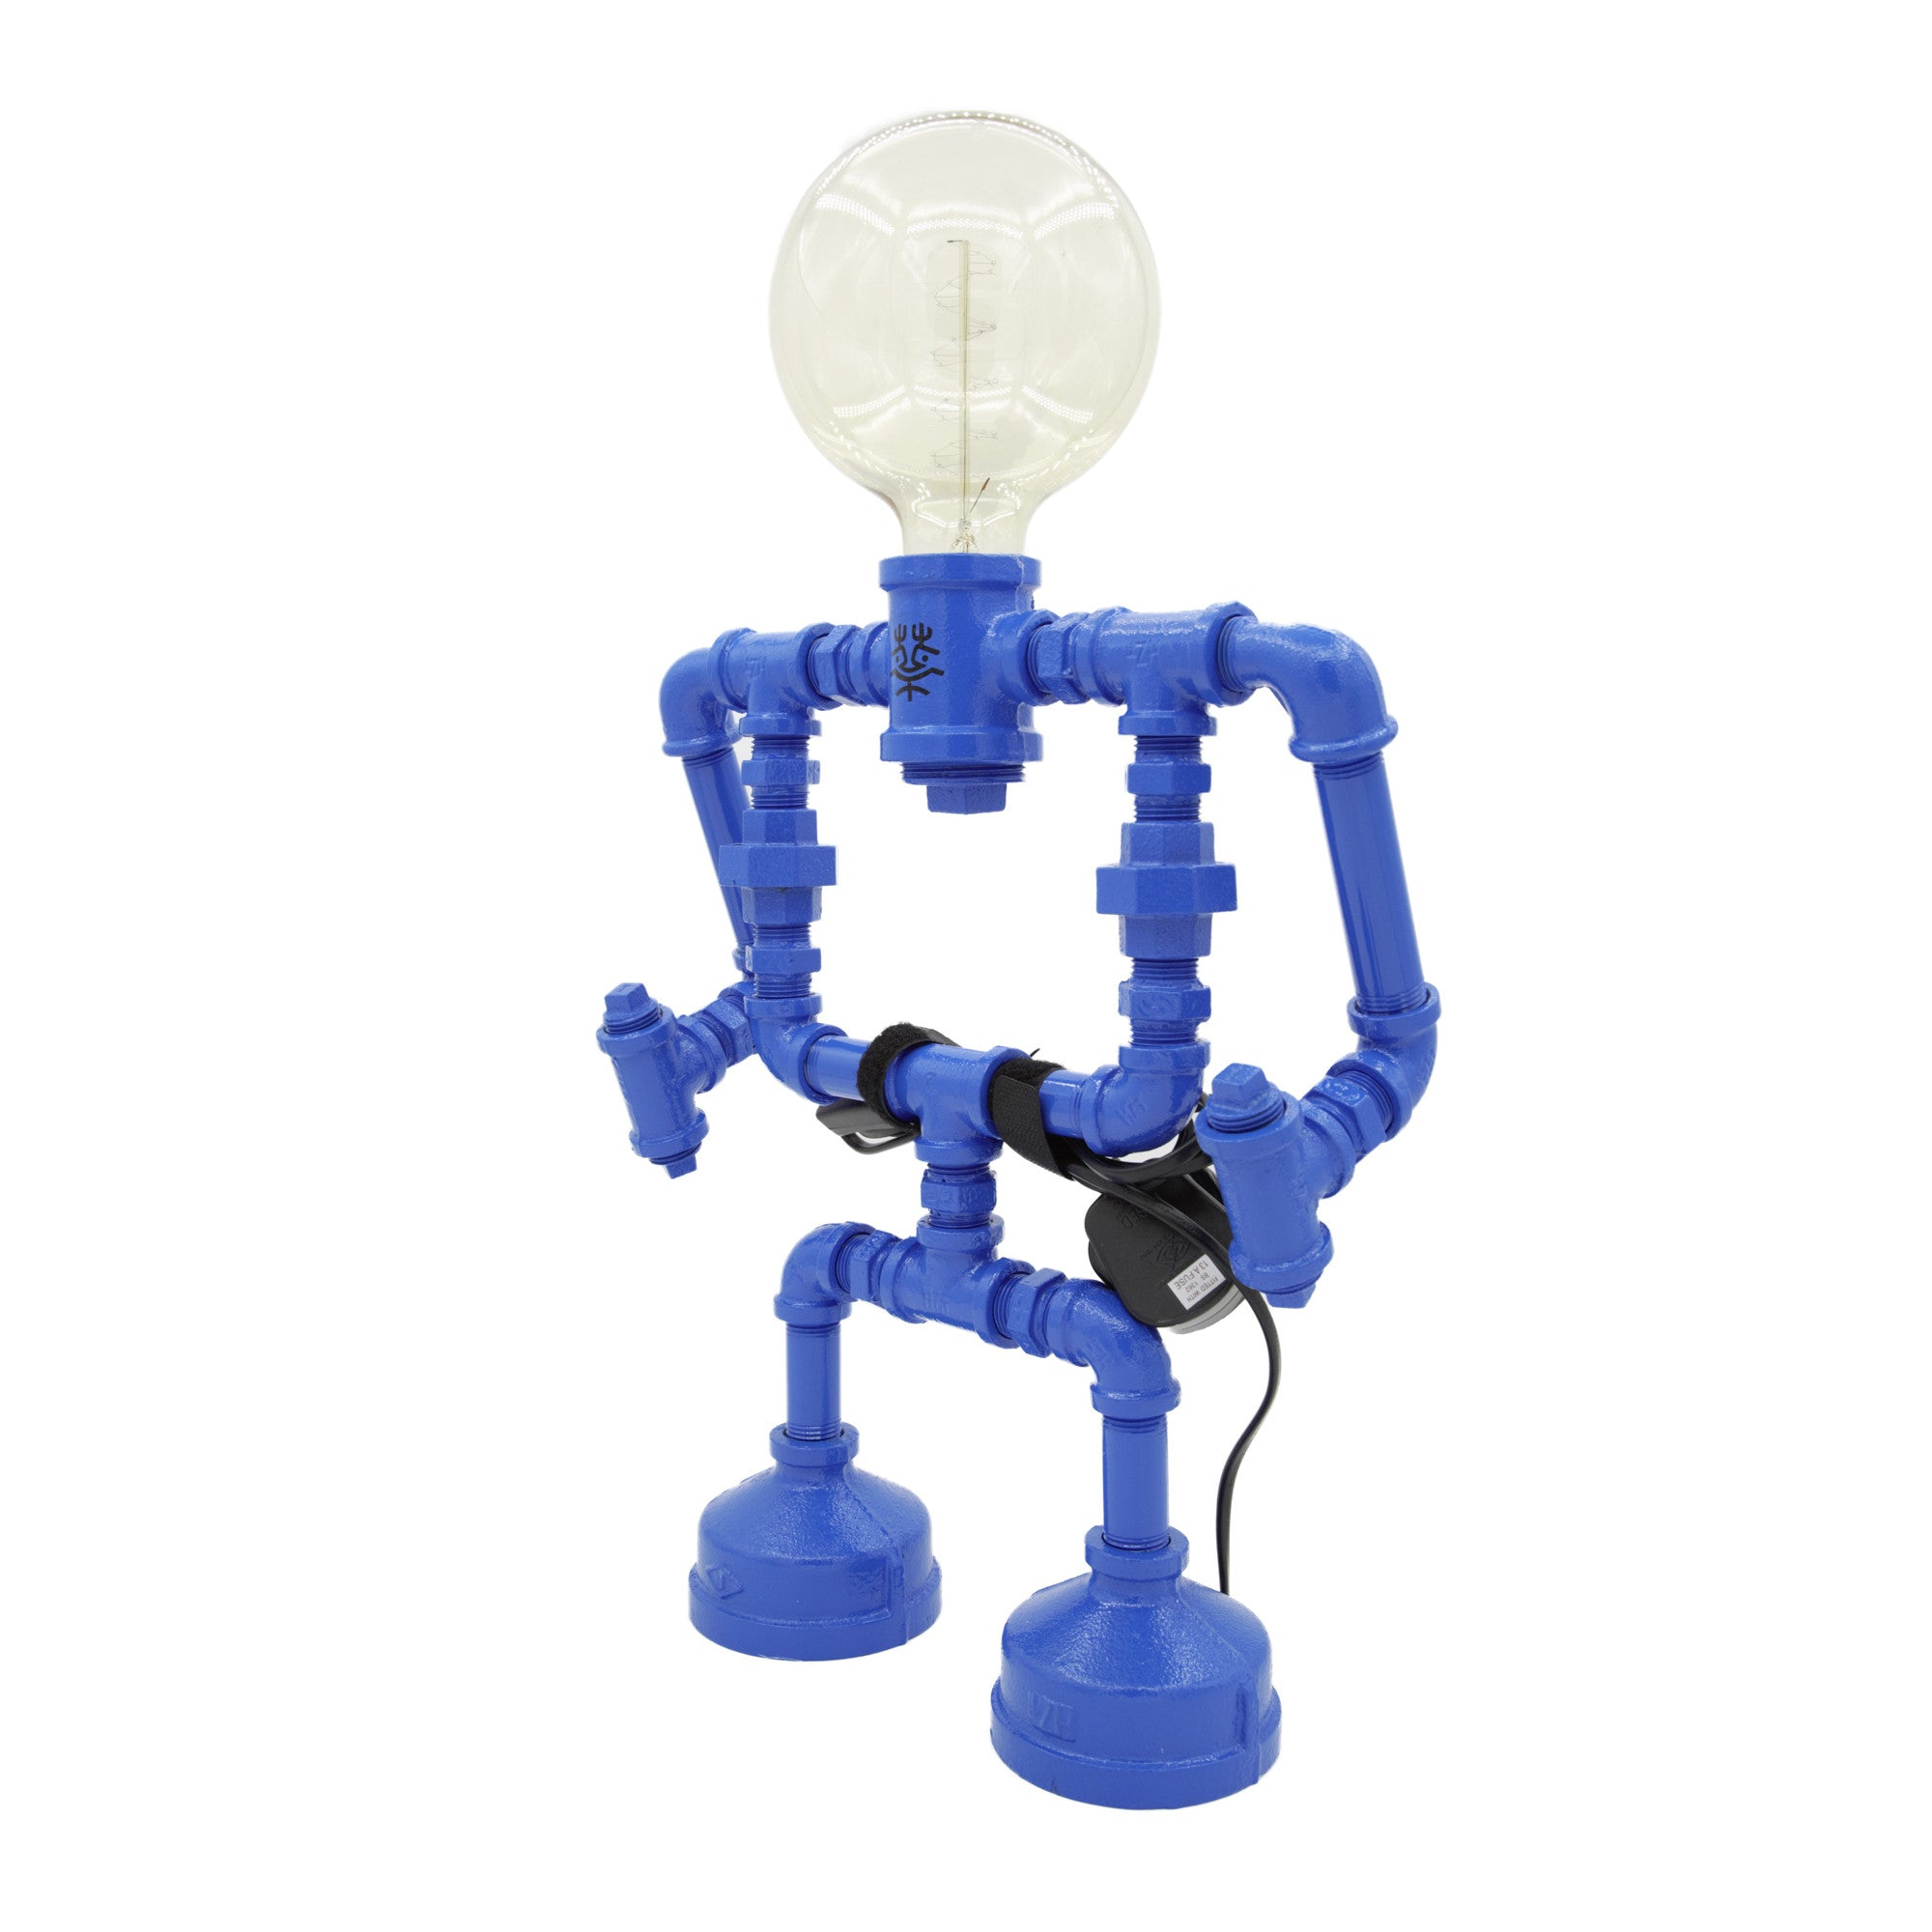 Touch Sensitive Robot Table Lamp - Large blue